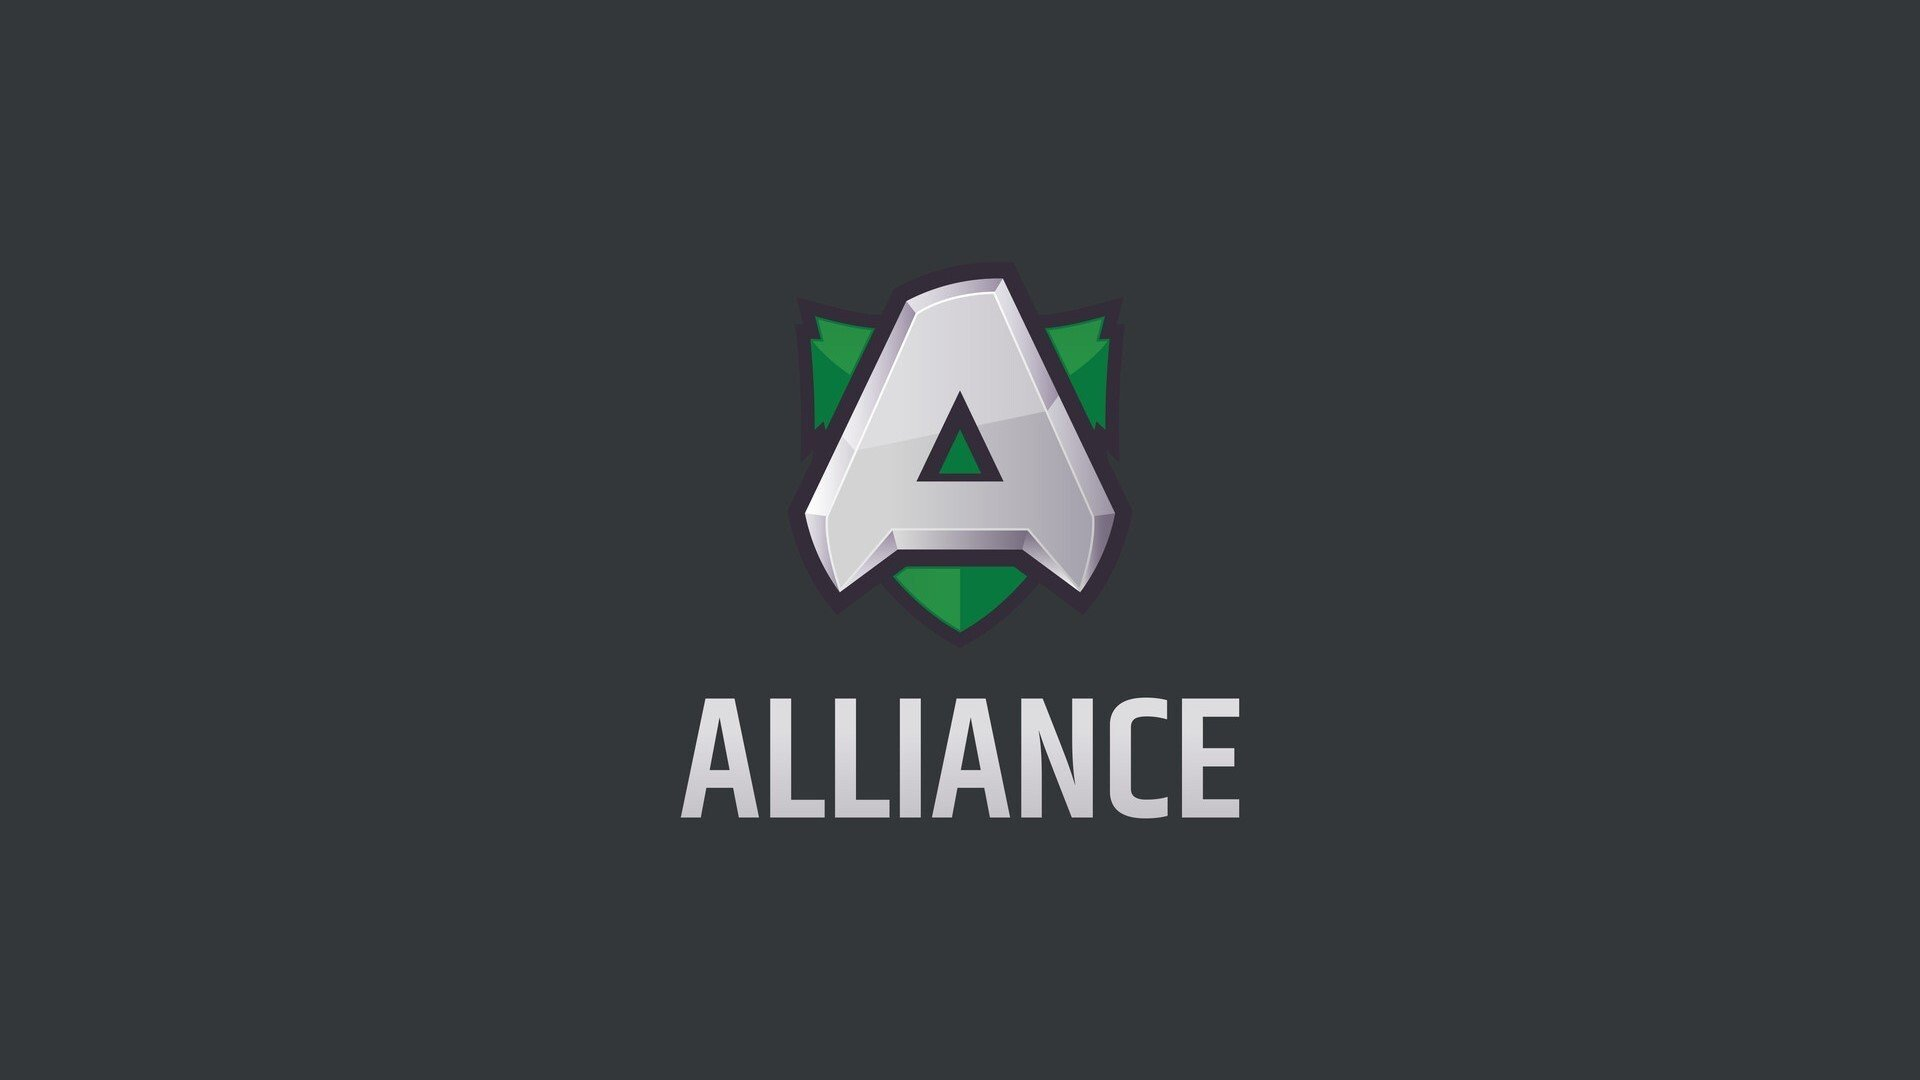 Alliance are not cheaters, just pedants*